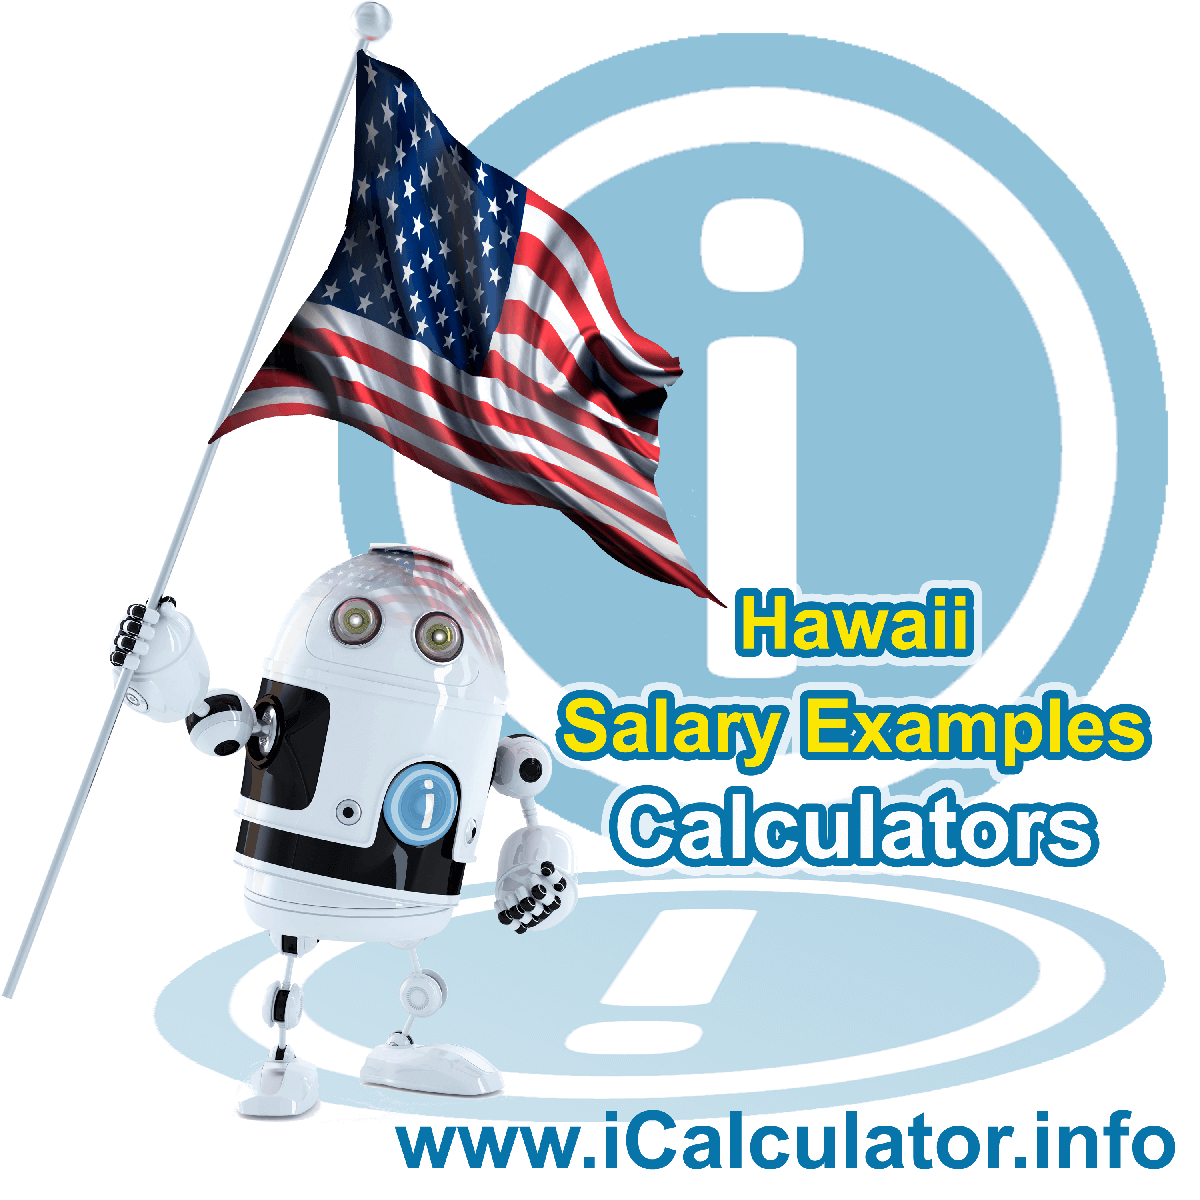 Hawaii Salary Example for $190.00 in 2020 | iCalculator | $190.00 salary example for employee and employer paying Hawaii State tincome taxes. Detailed salary after tax calculation including Hawaii State Tax, Federal State Tax, Medicare Deductions, Social Security, Capital Gains and other income tax and salary deductions complete with supporting Hawaii state tax tables